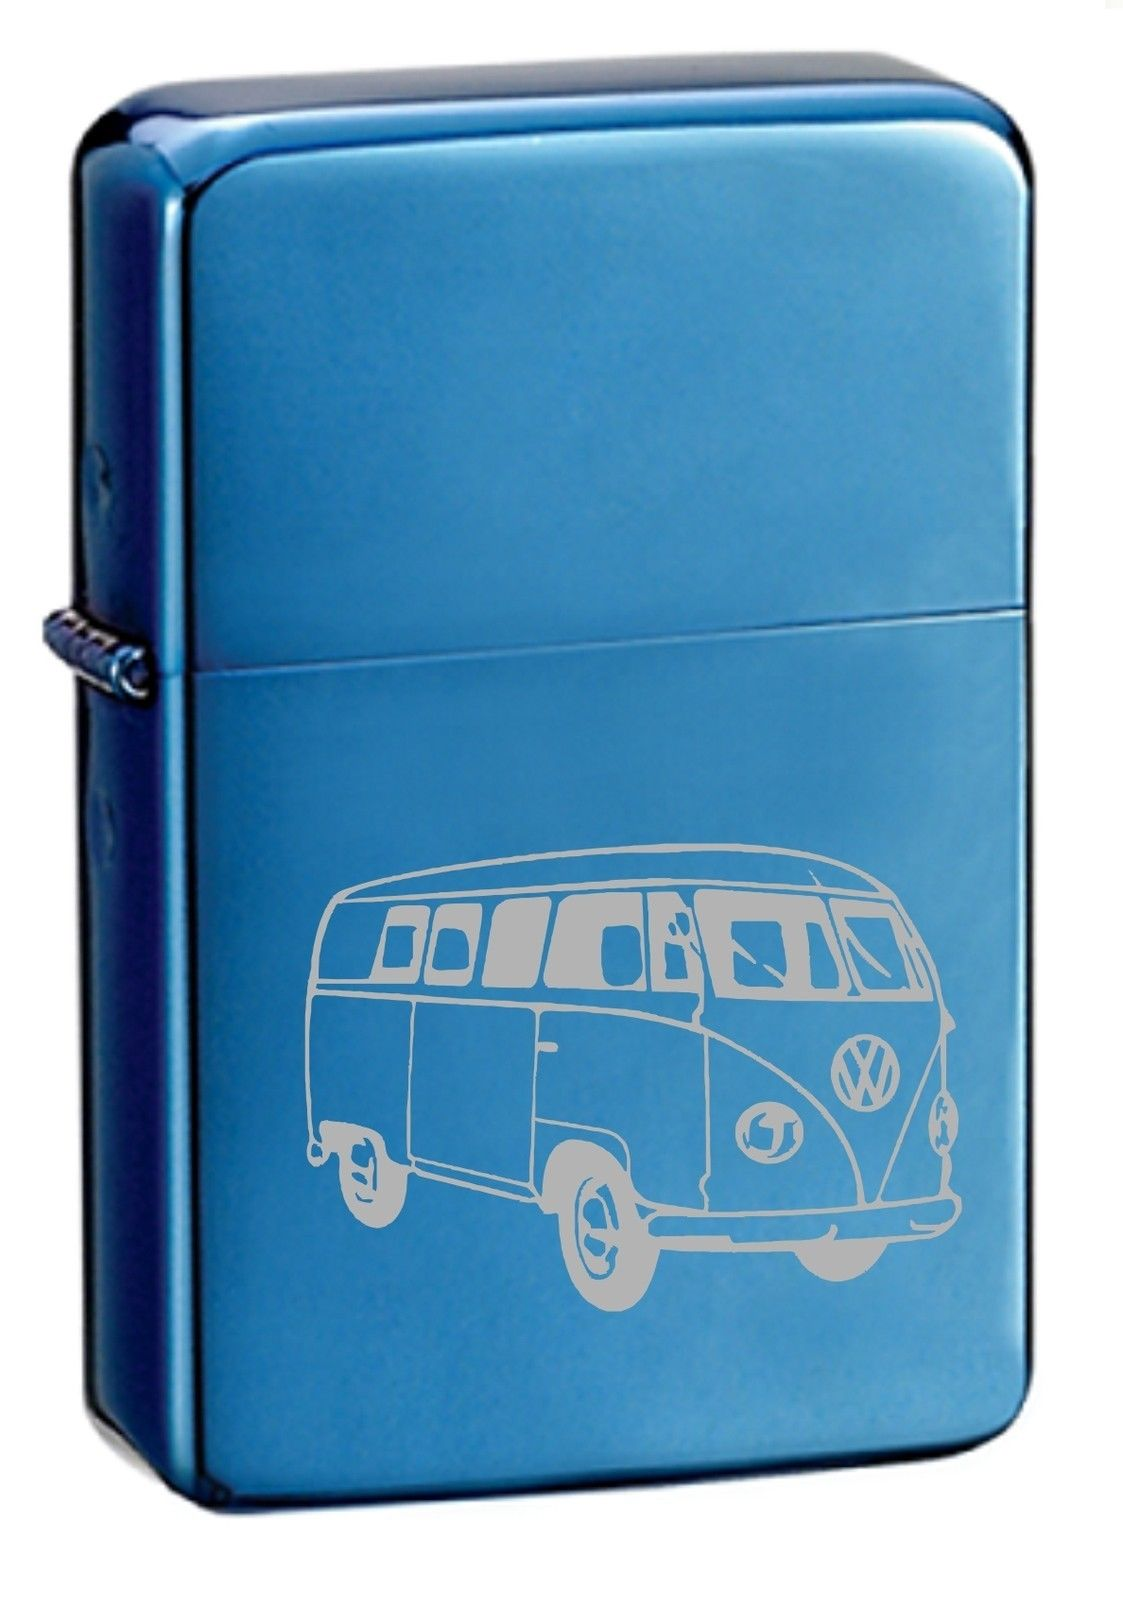 vw-blue-ice